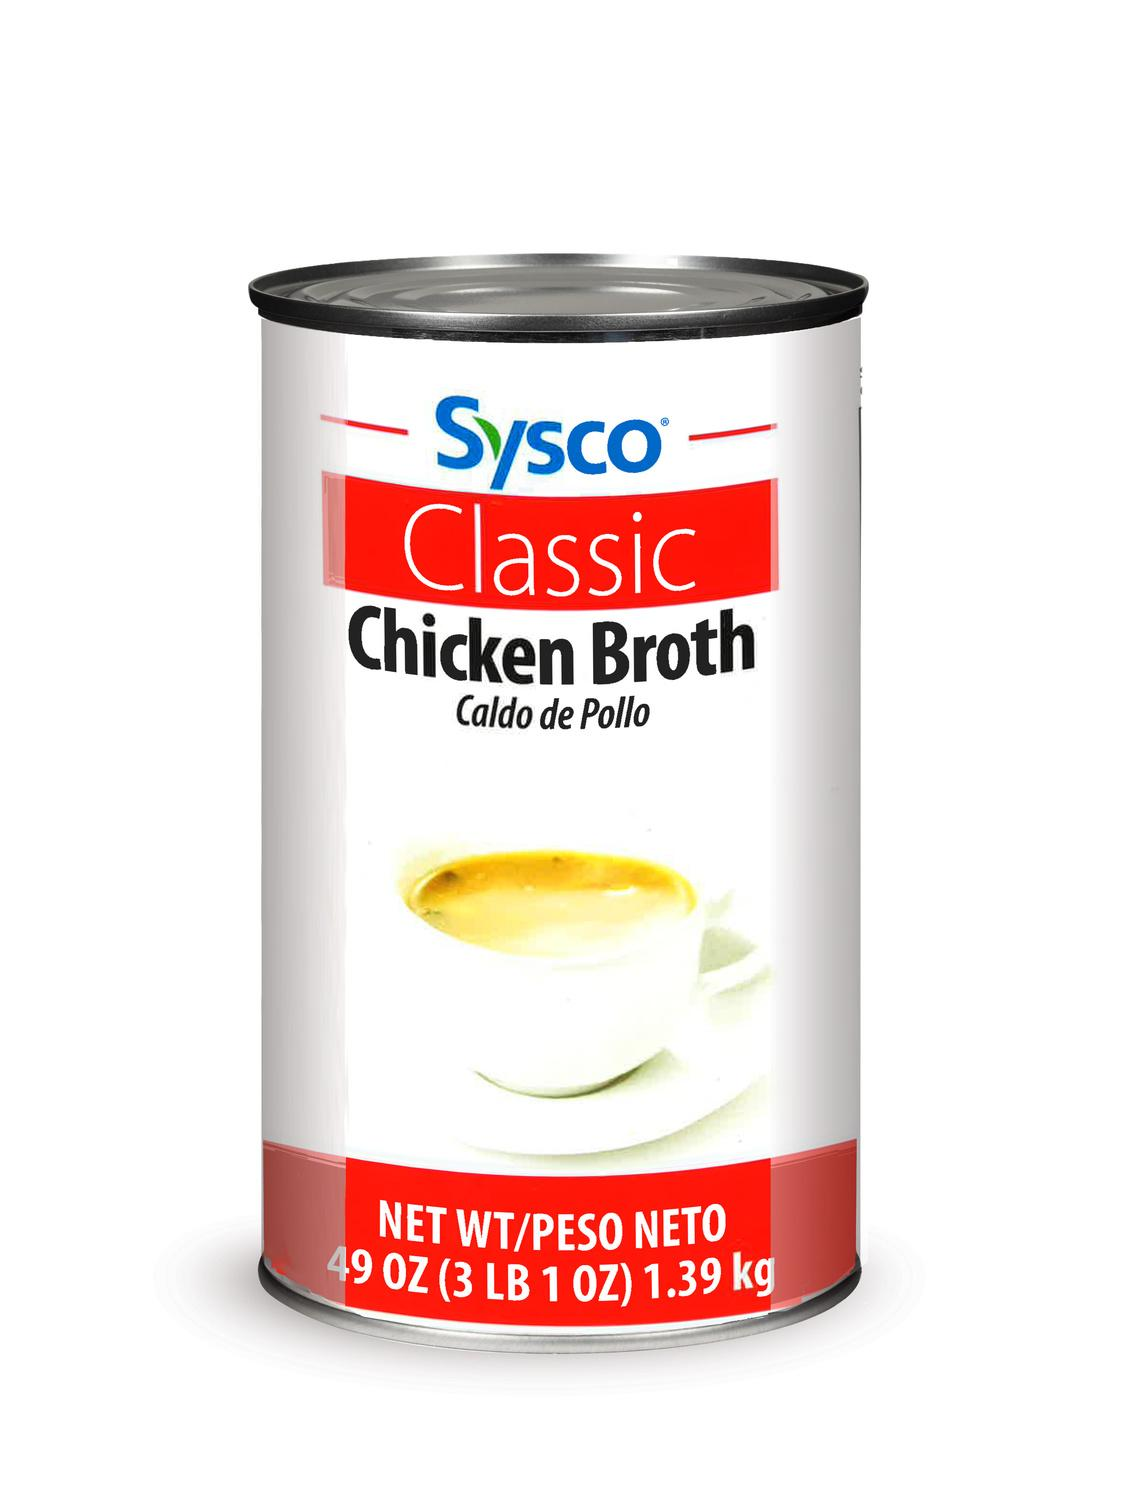 image of Sysco Classic Chicken Broth